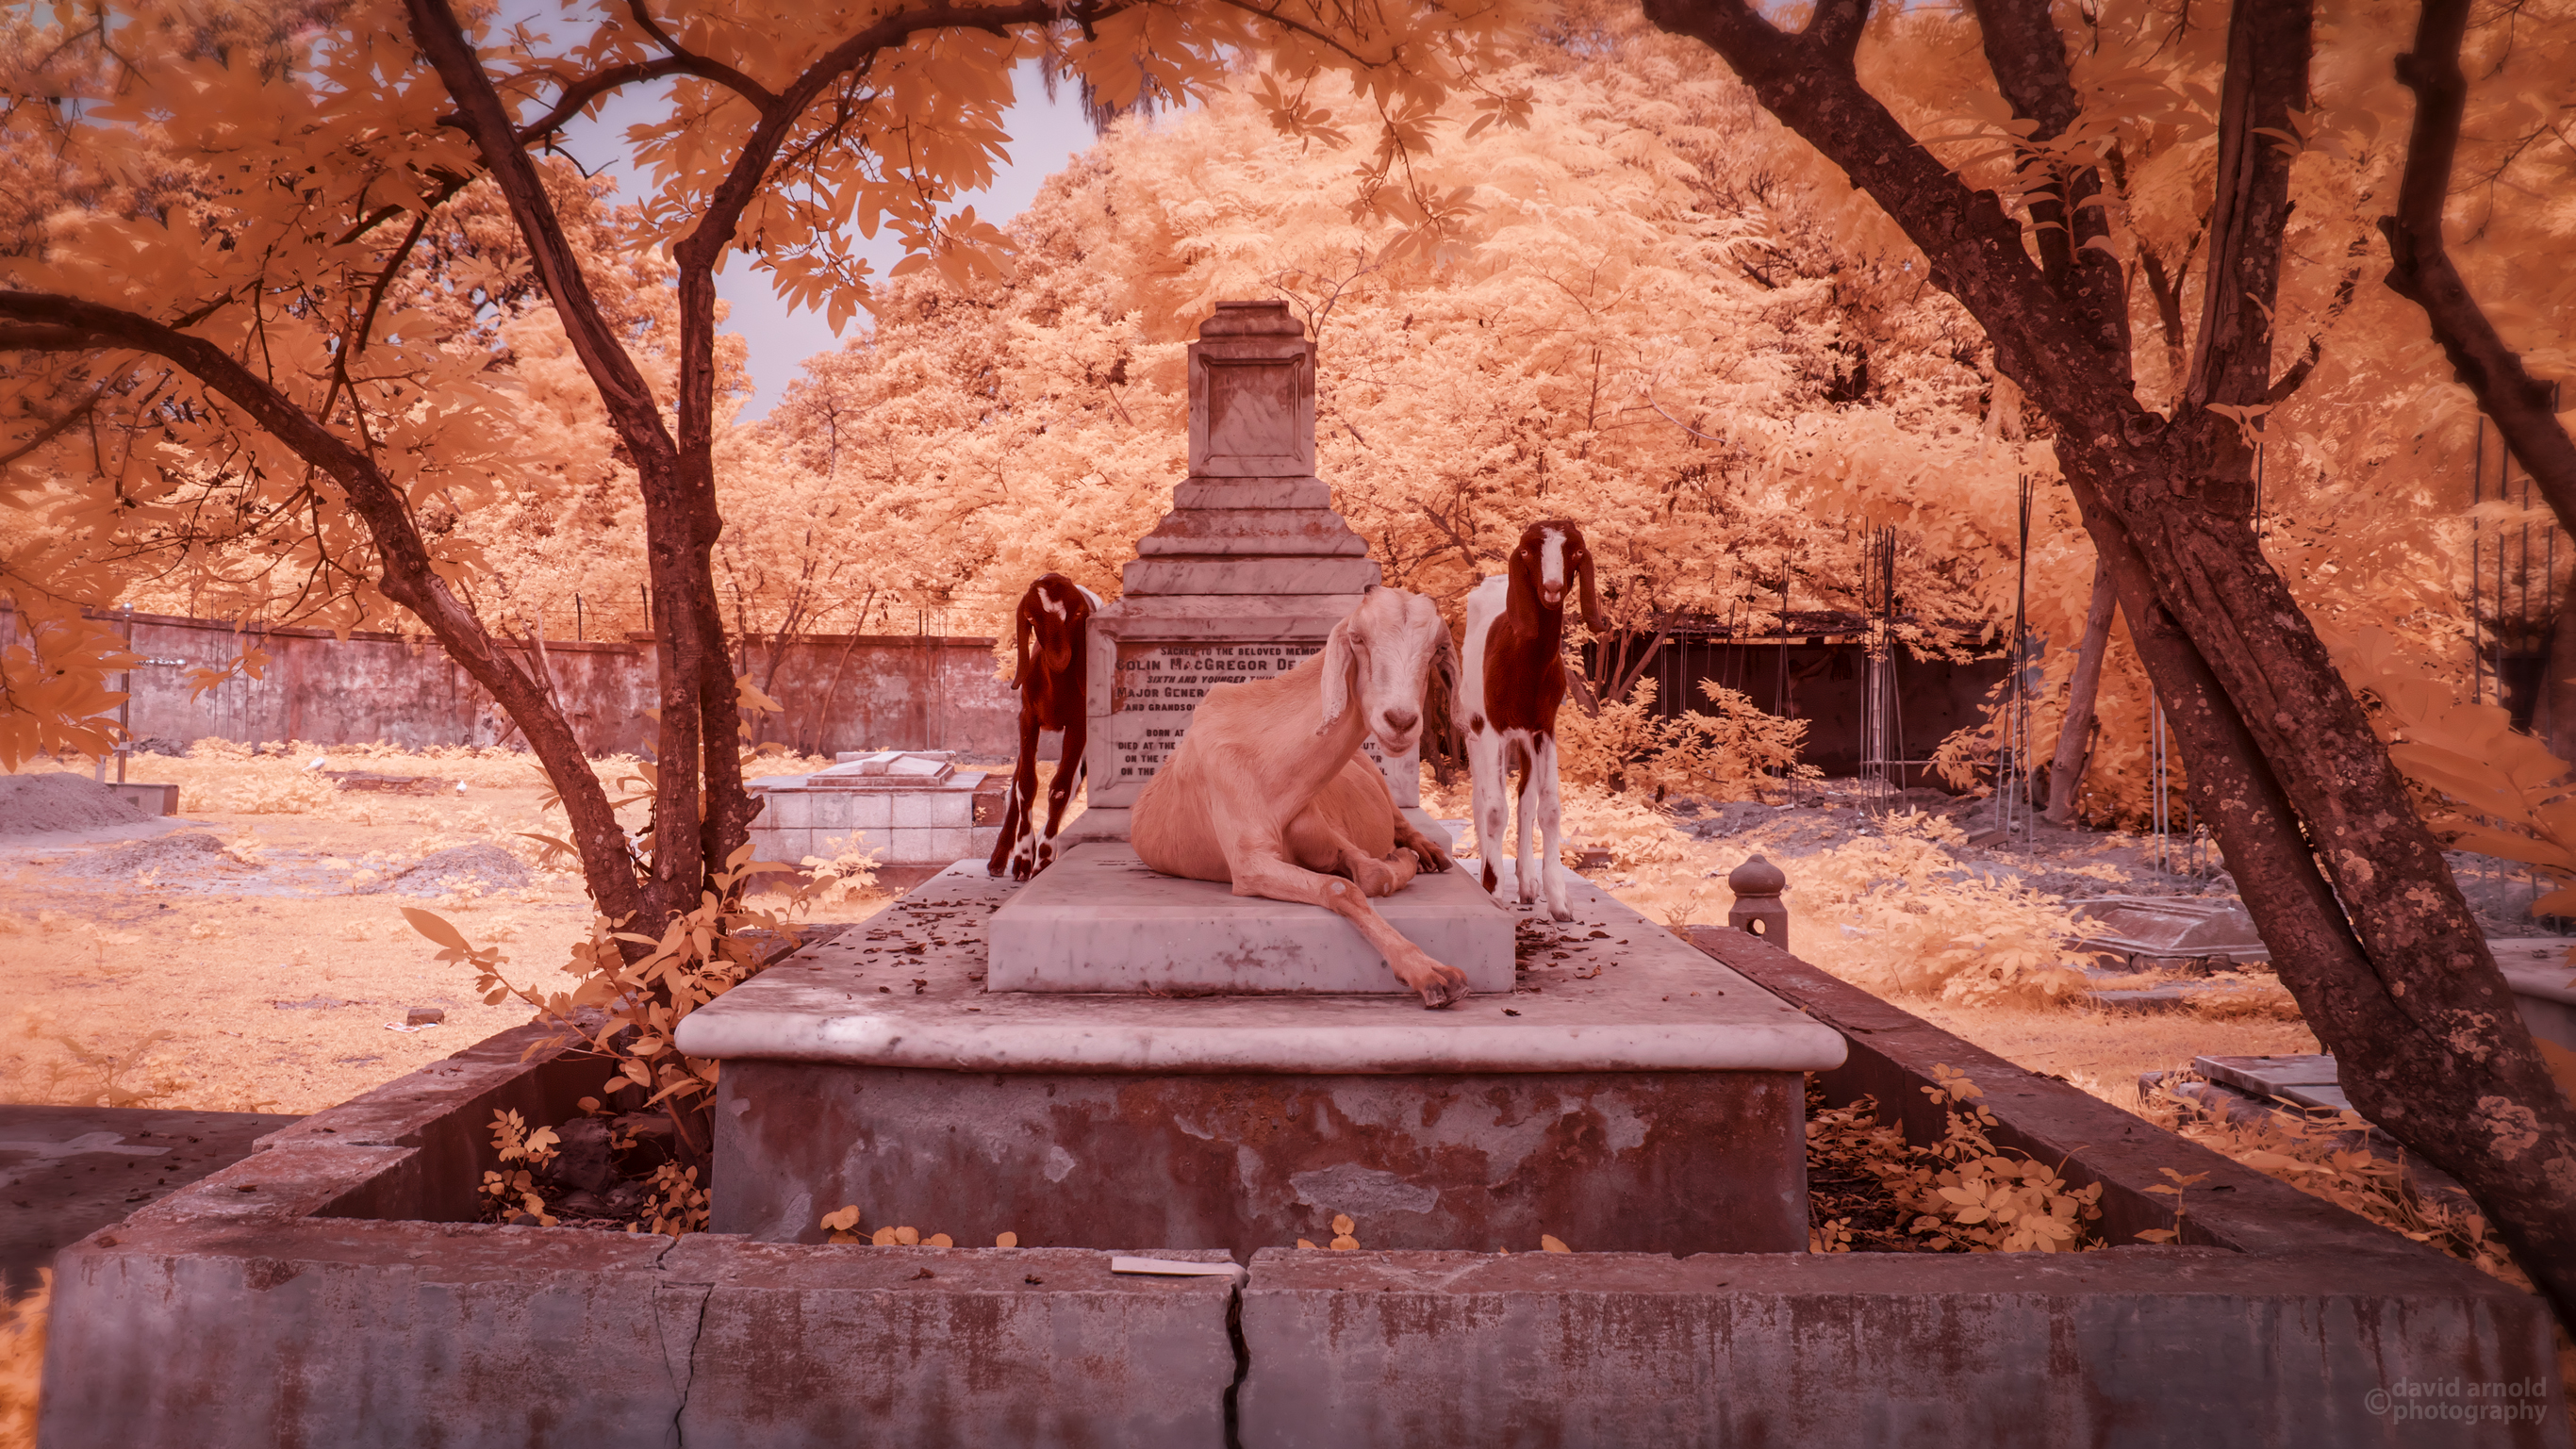 Three goats resting on a cemetery tomb.